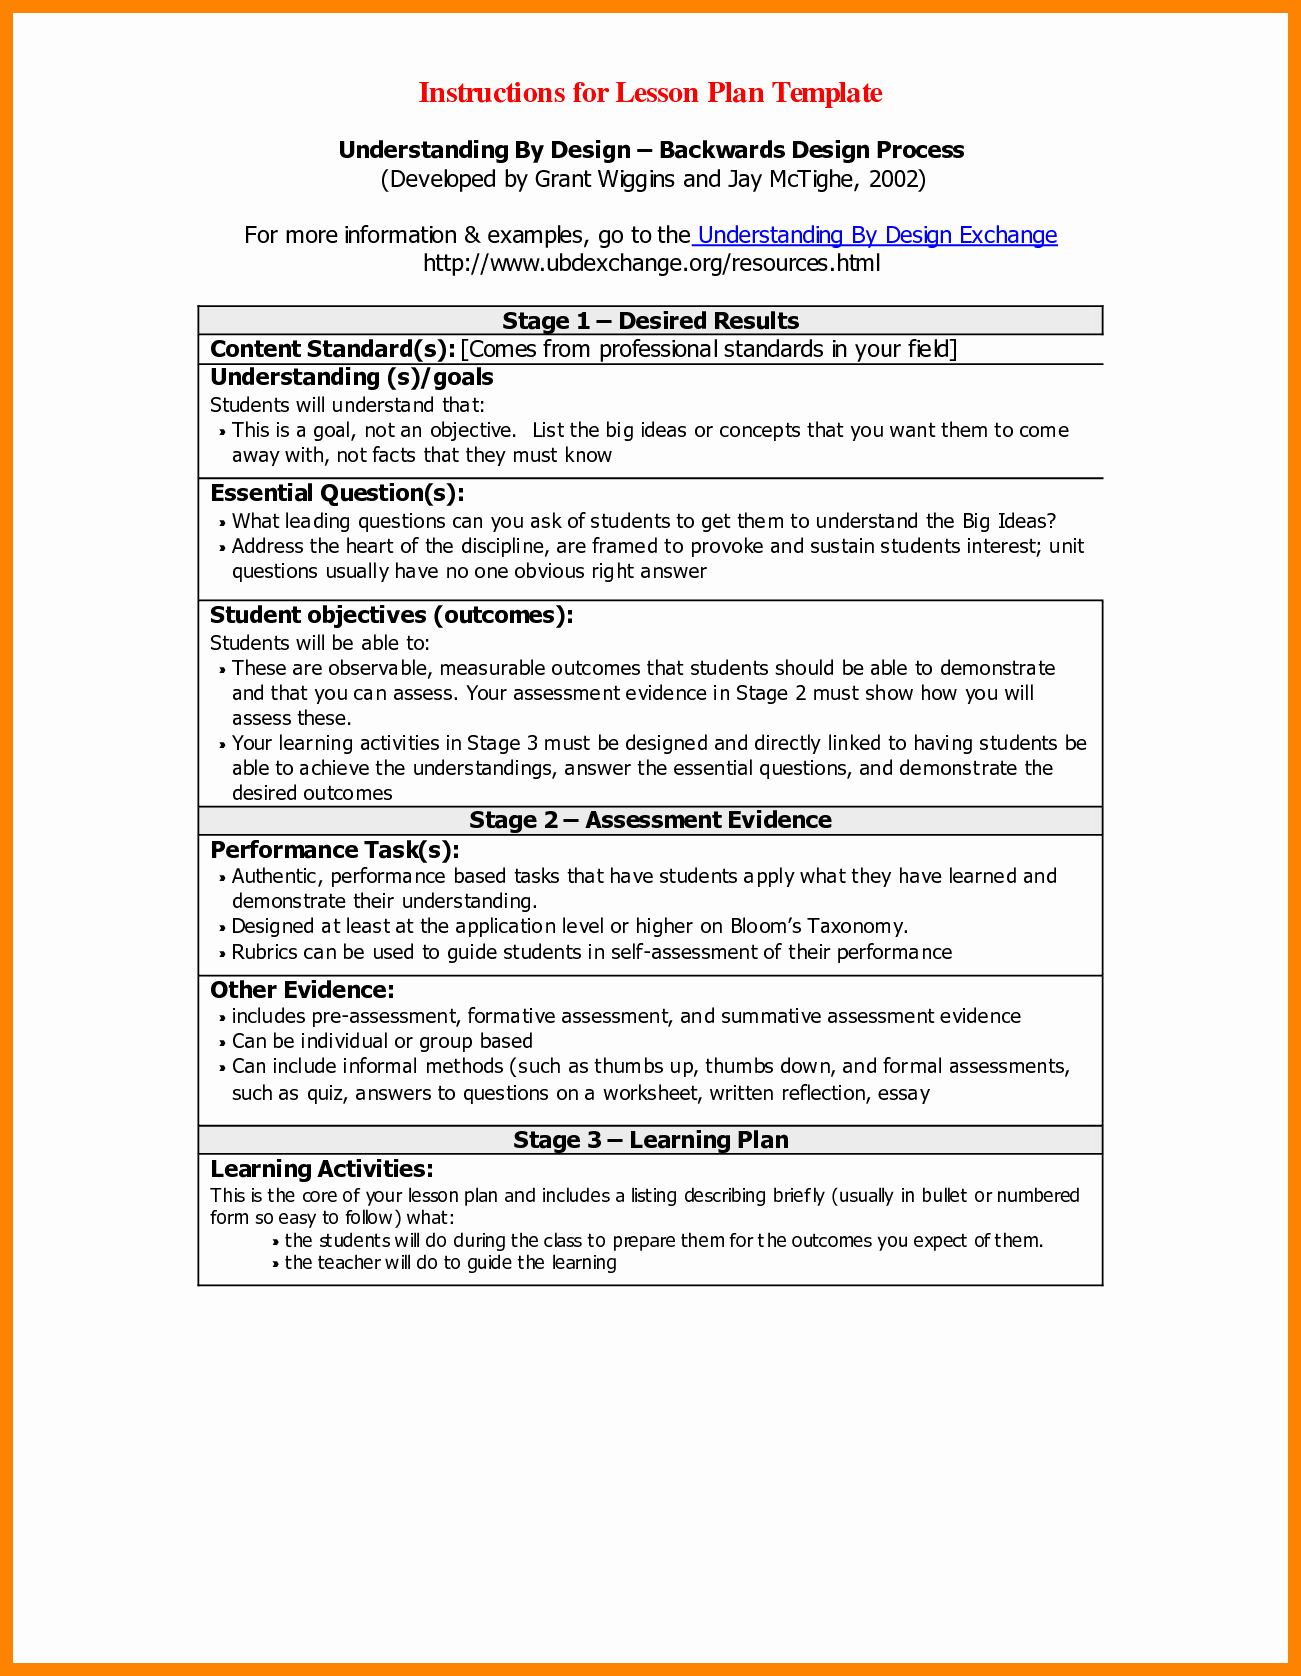 Backwards Design Lesson Plan Template Elegant 16 Backwards Design Lesson Plan Template